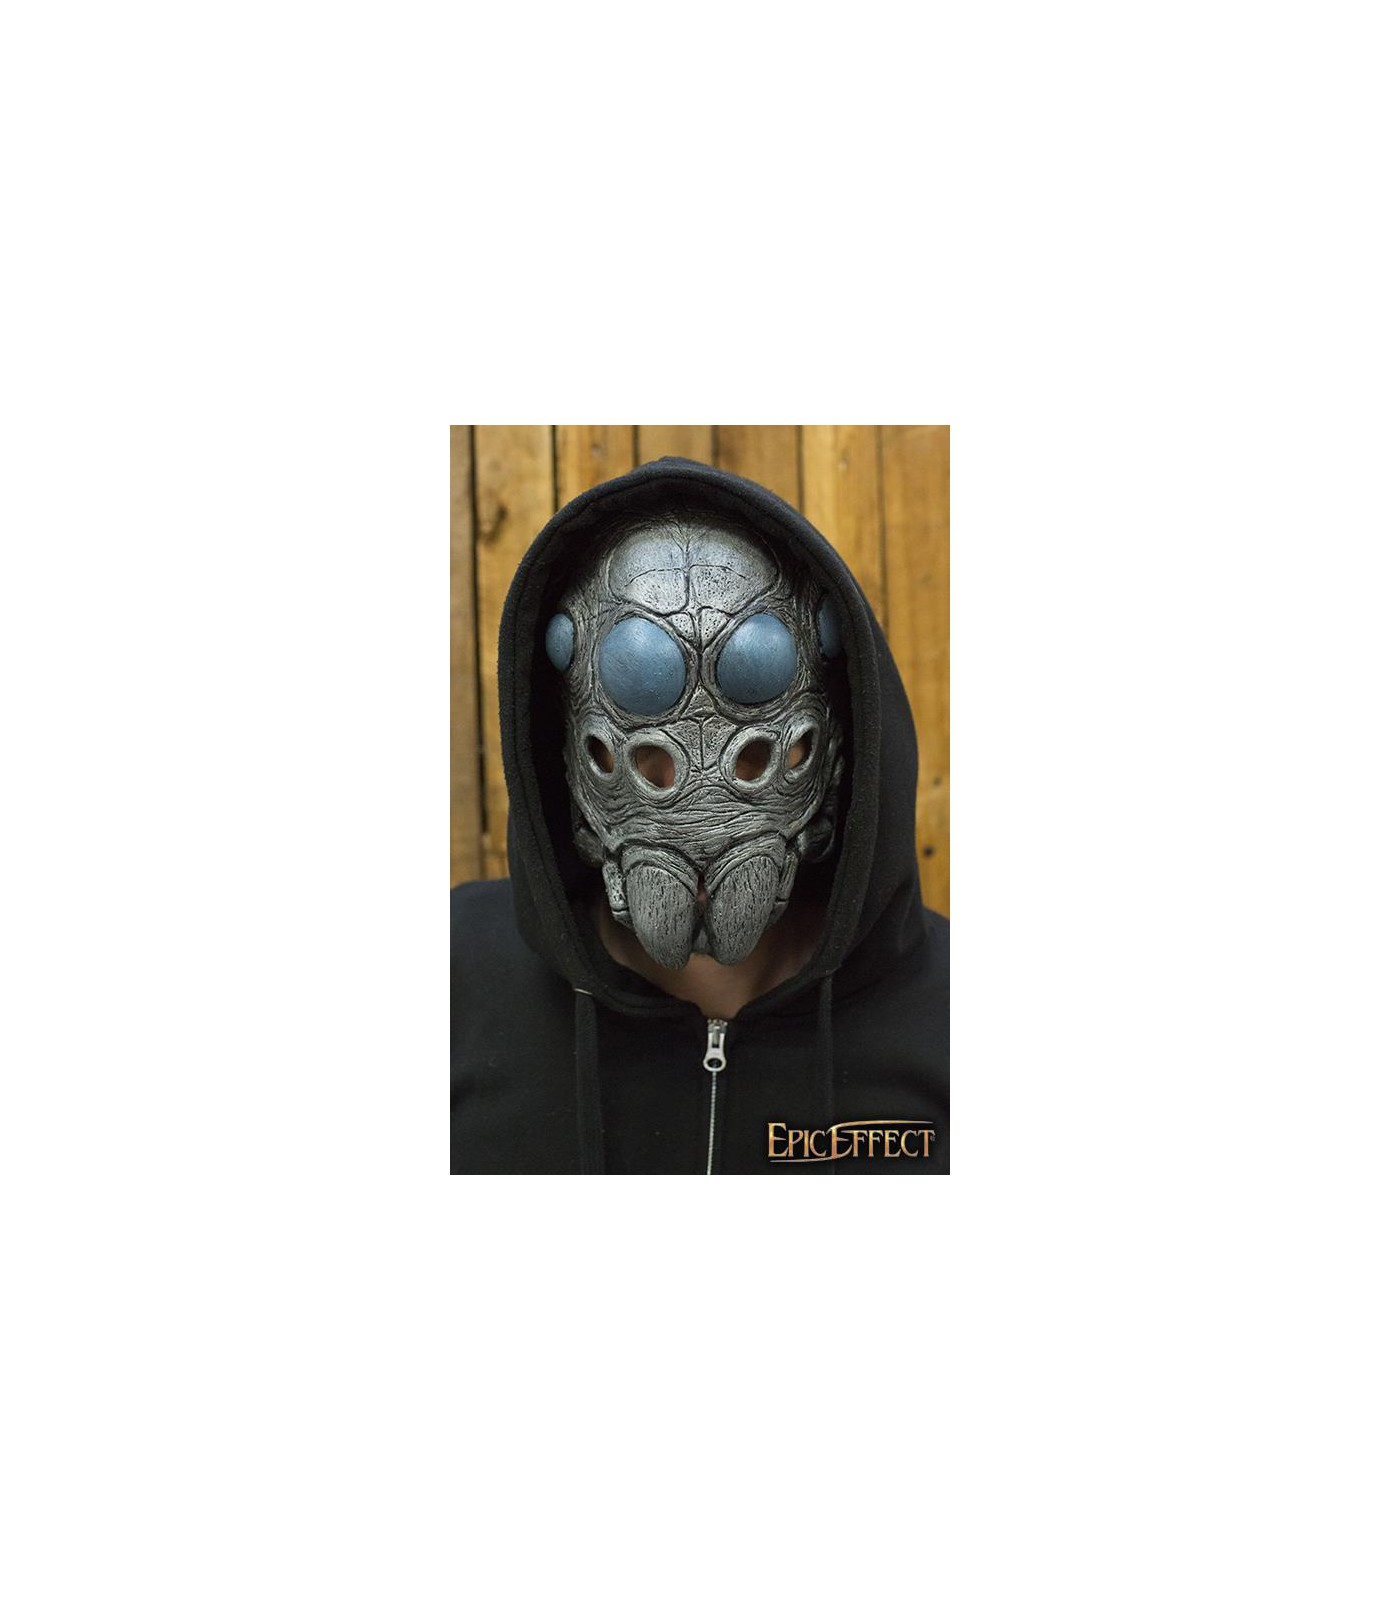 Costume Fantasy Wood Face Trophy Mask in Latex for Stage Re-enactment /& LARP